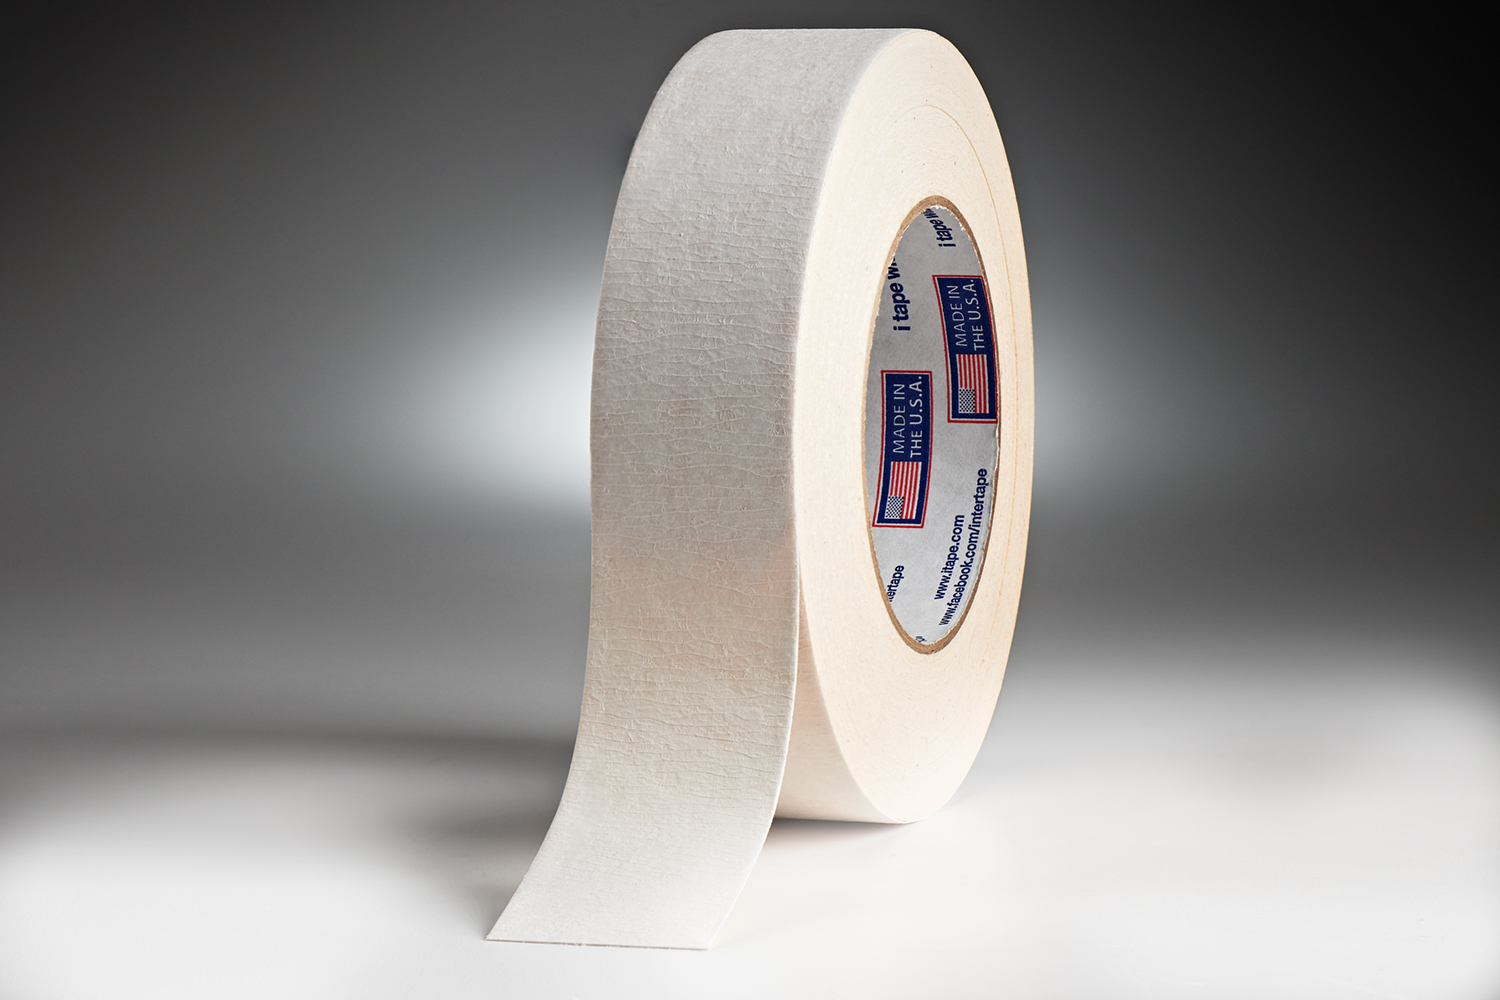 508013 #S 15717 Double SidedTape 1&1 2inx36yds 946